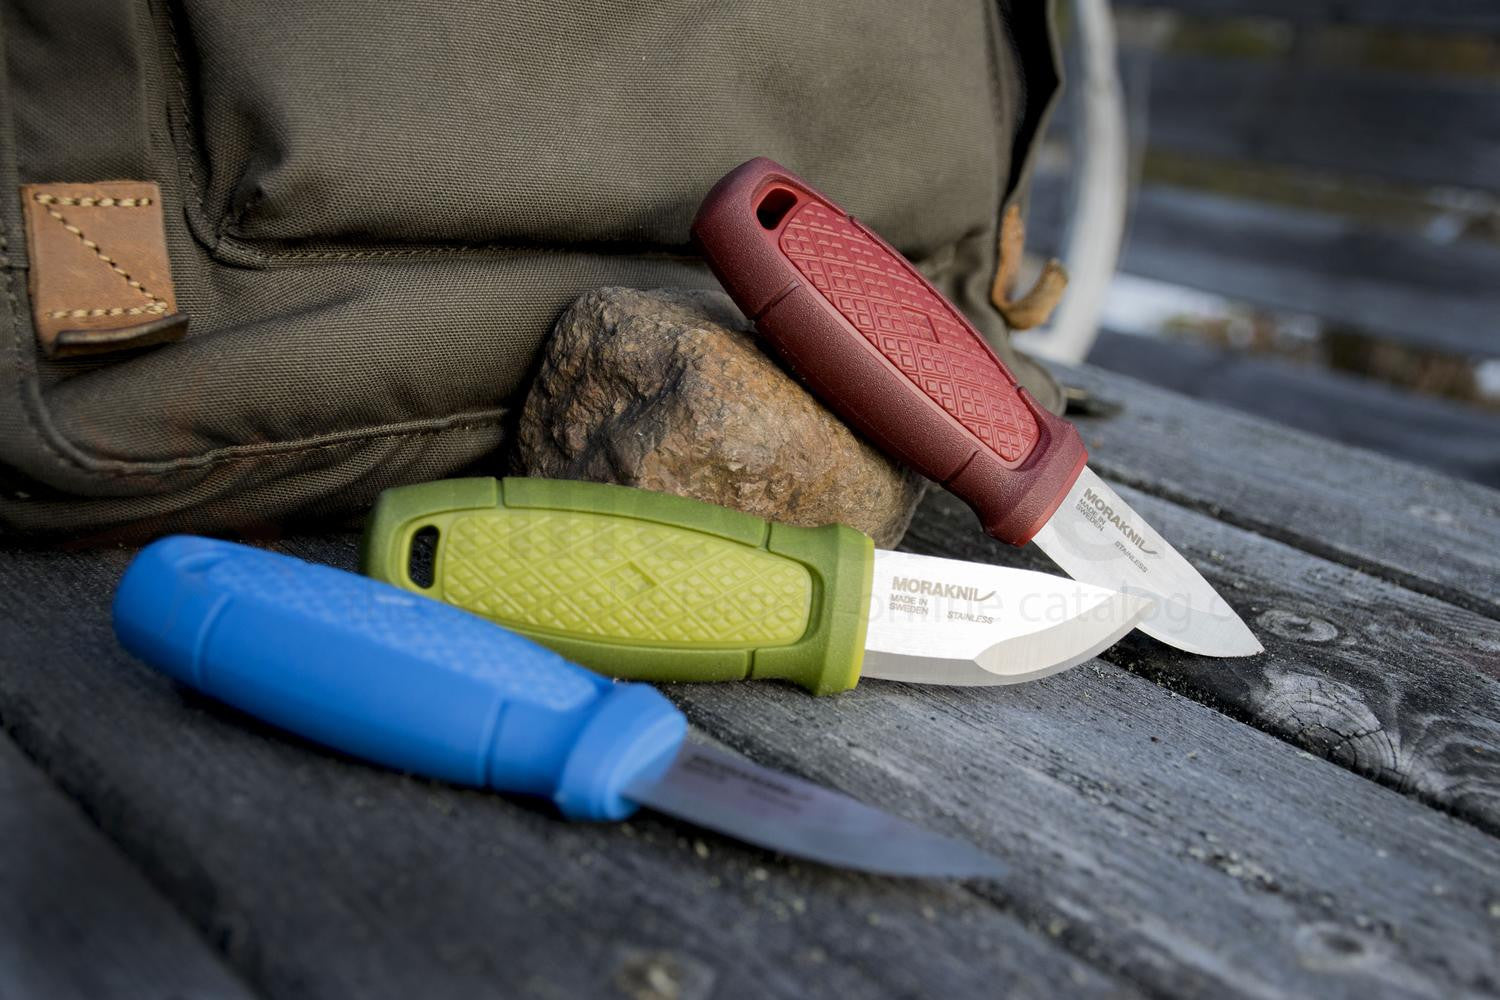 Morakniv Morakniv Eldris Green Outdoor Knife with Clam Sheath - BNR Industrial